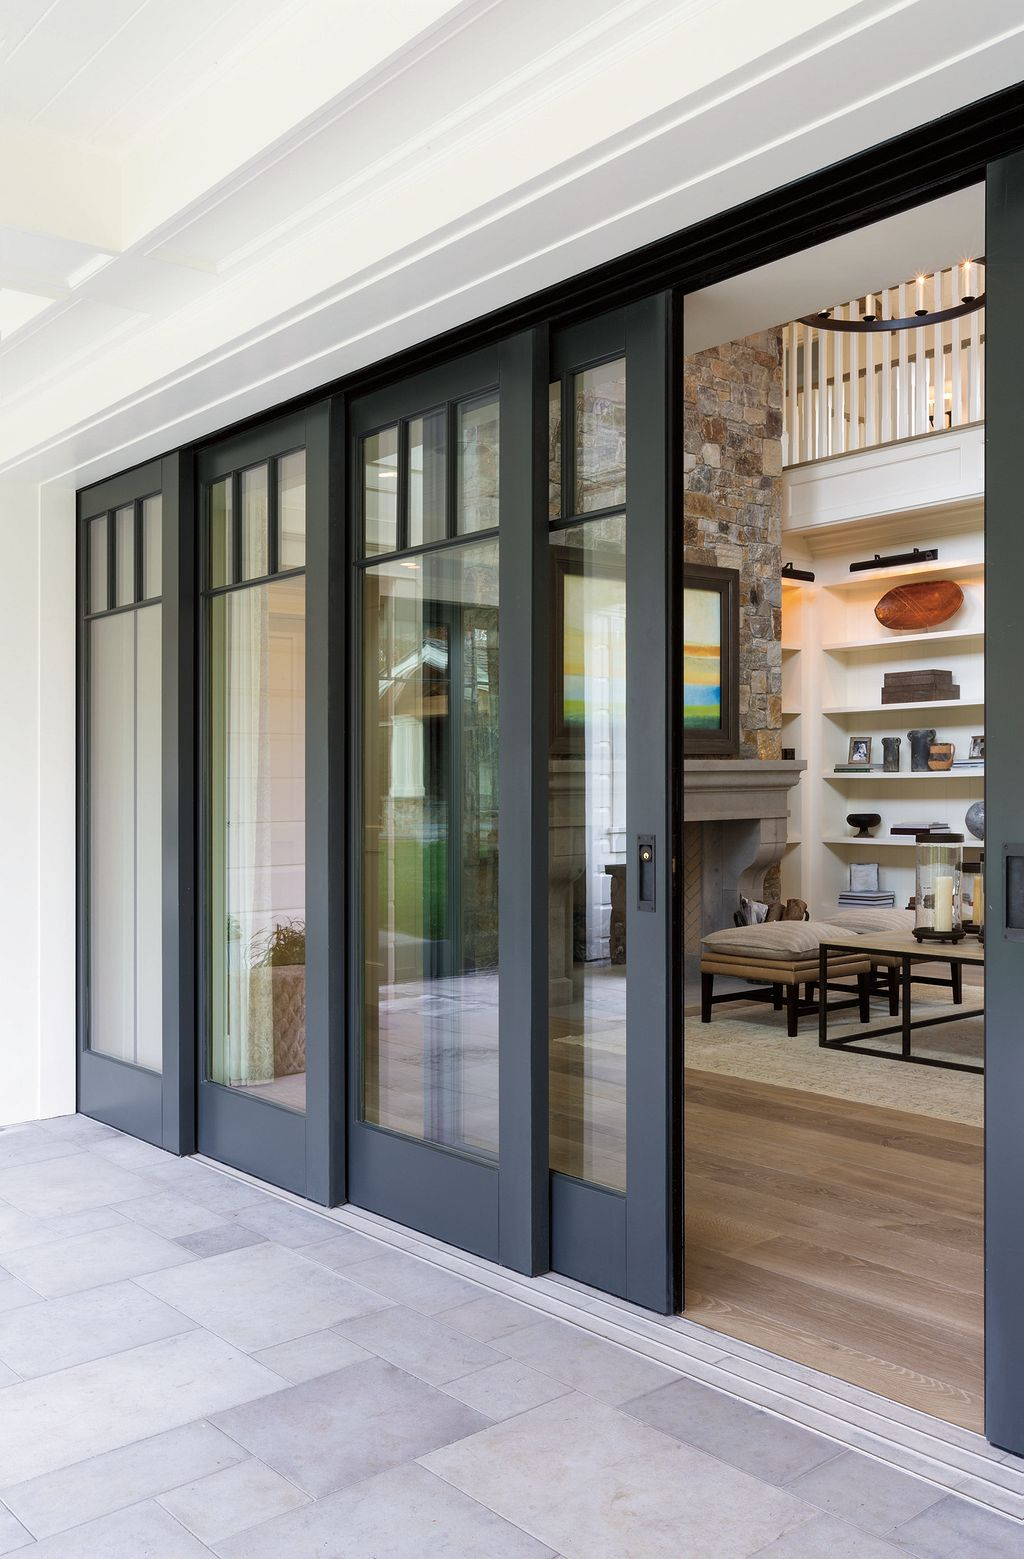 Gorgeous 10 Cool Ideas To Increase Your Patio This Summer Https Kidmagz Com 10 Cool Ideas To Glass Doors Patio Sliding Doors Exterior French Doors Exterior